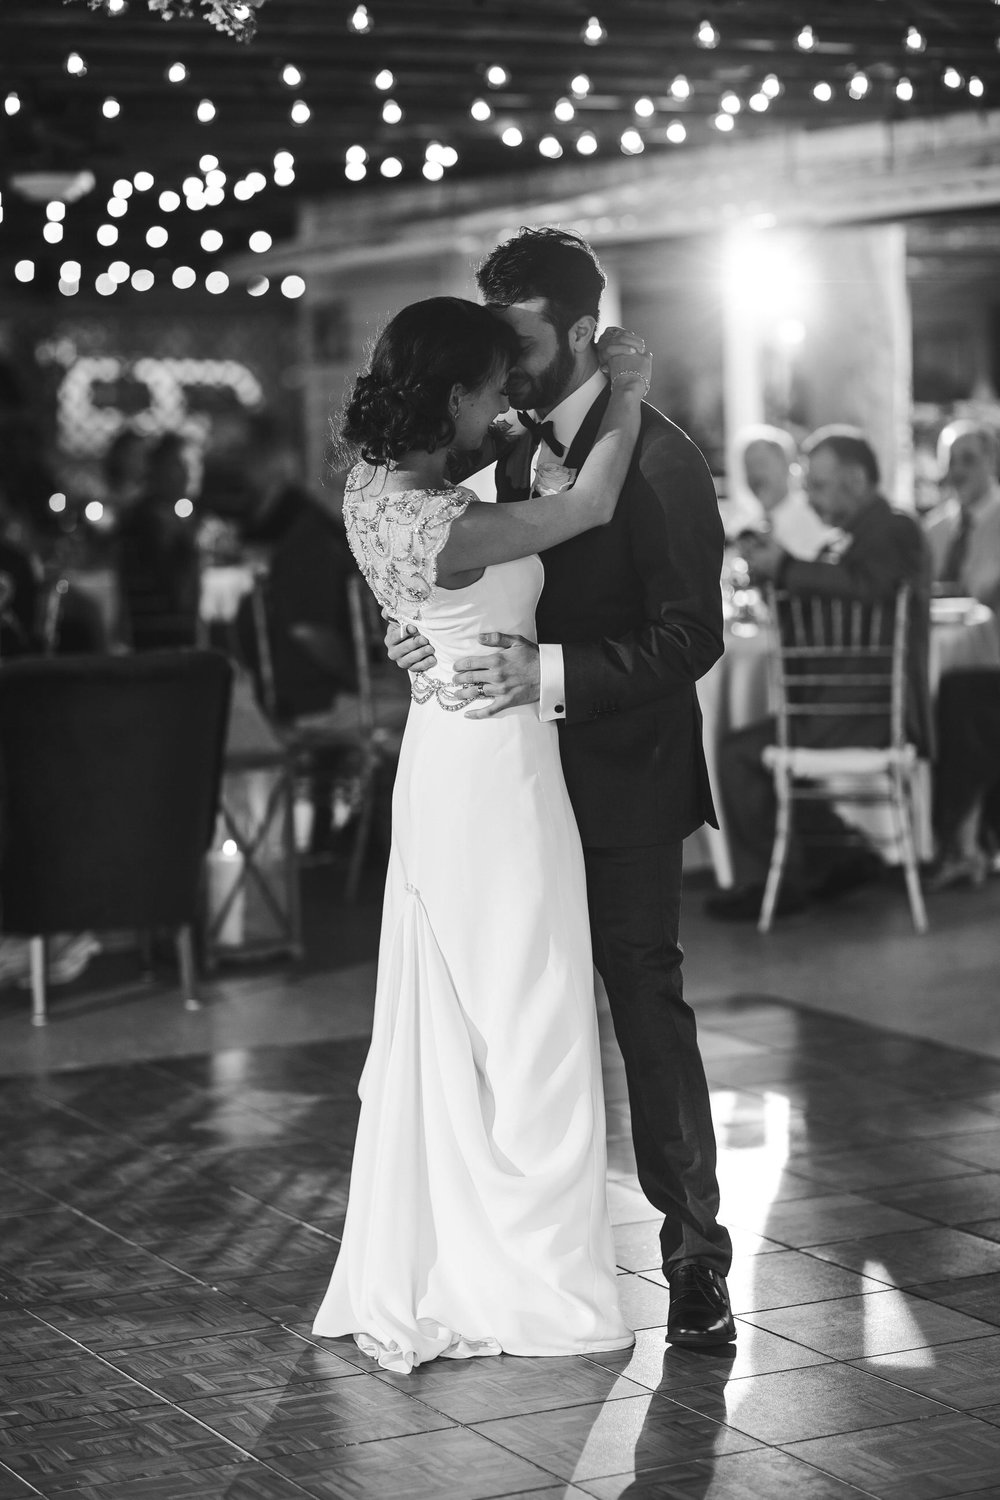 first-dance-moments-emotional-tiny-house-photo.jpg